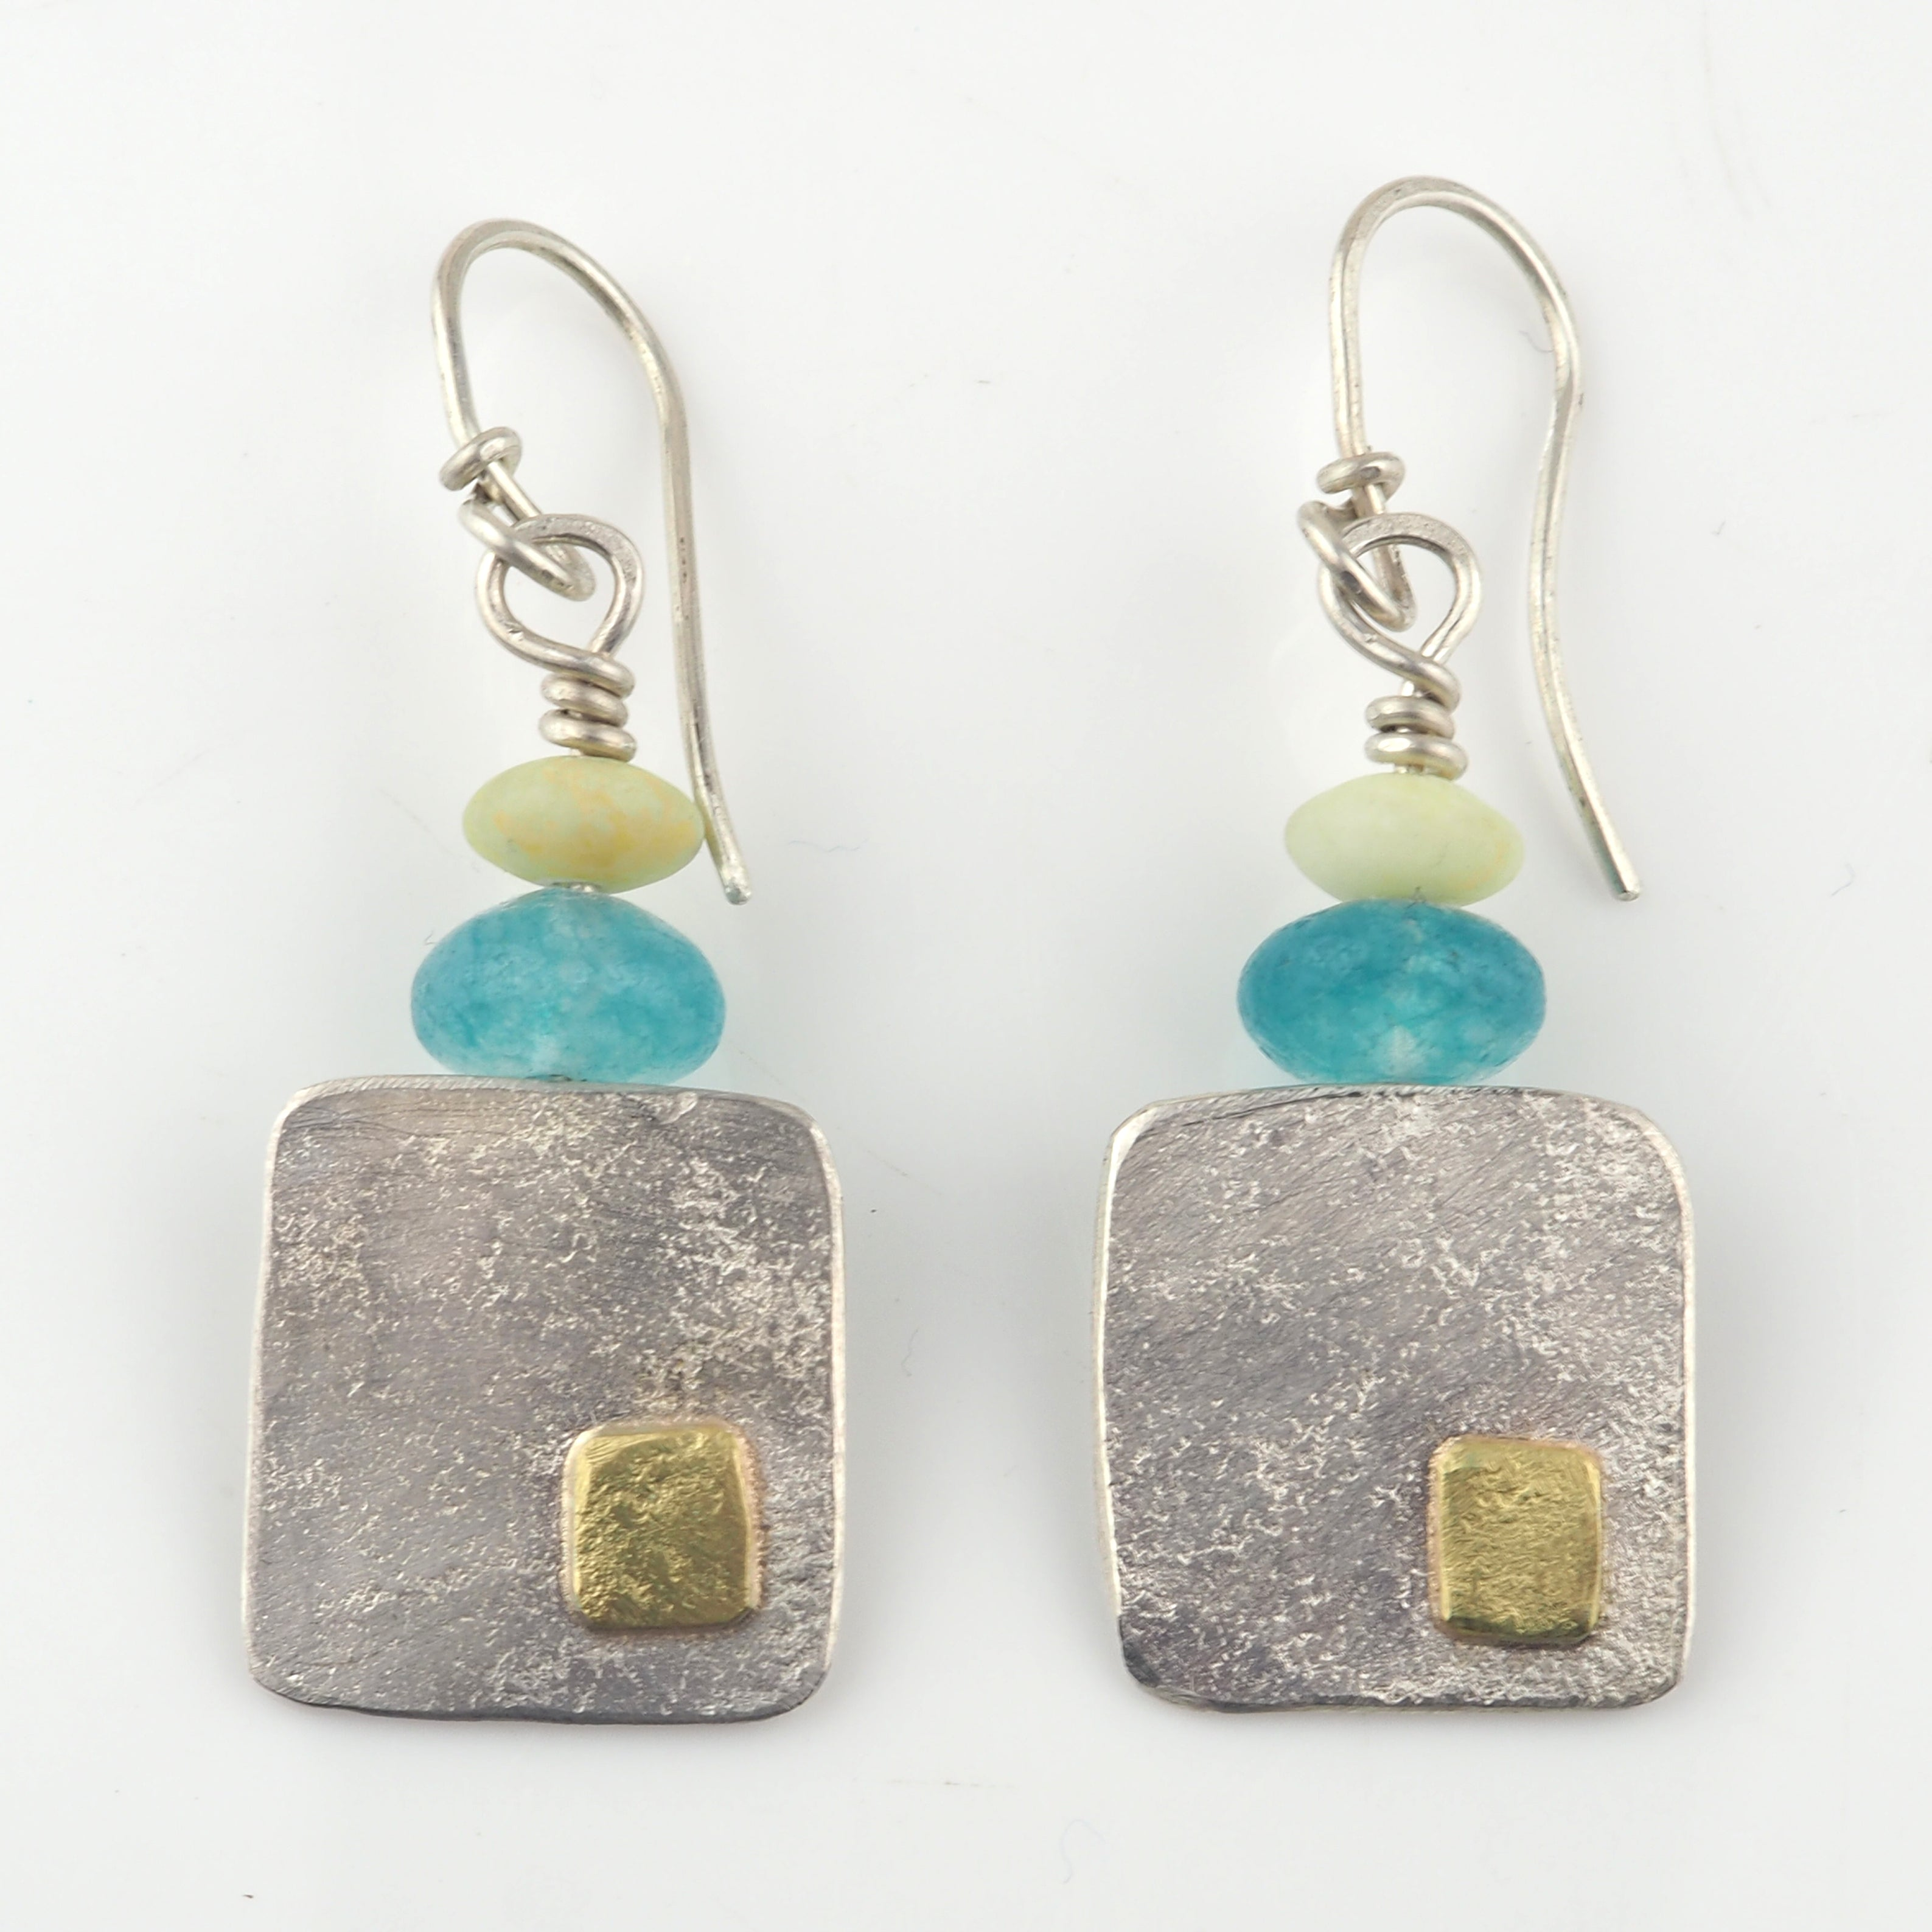 Gold and Silver Hand Beaten Earrings | Duibhne Gough | Primavera Gallery